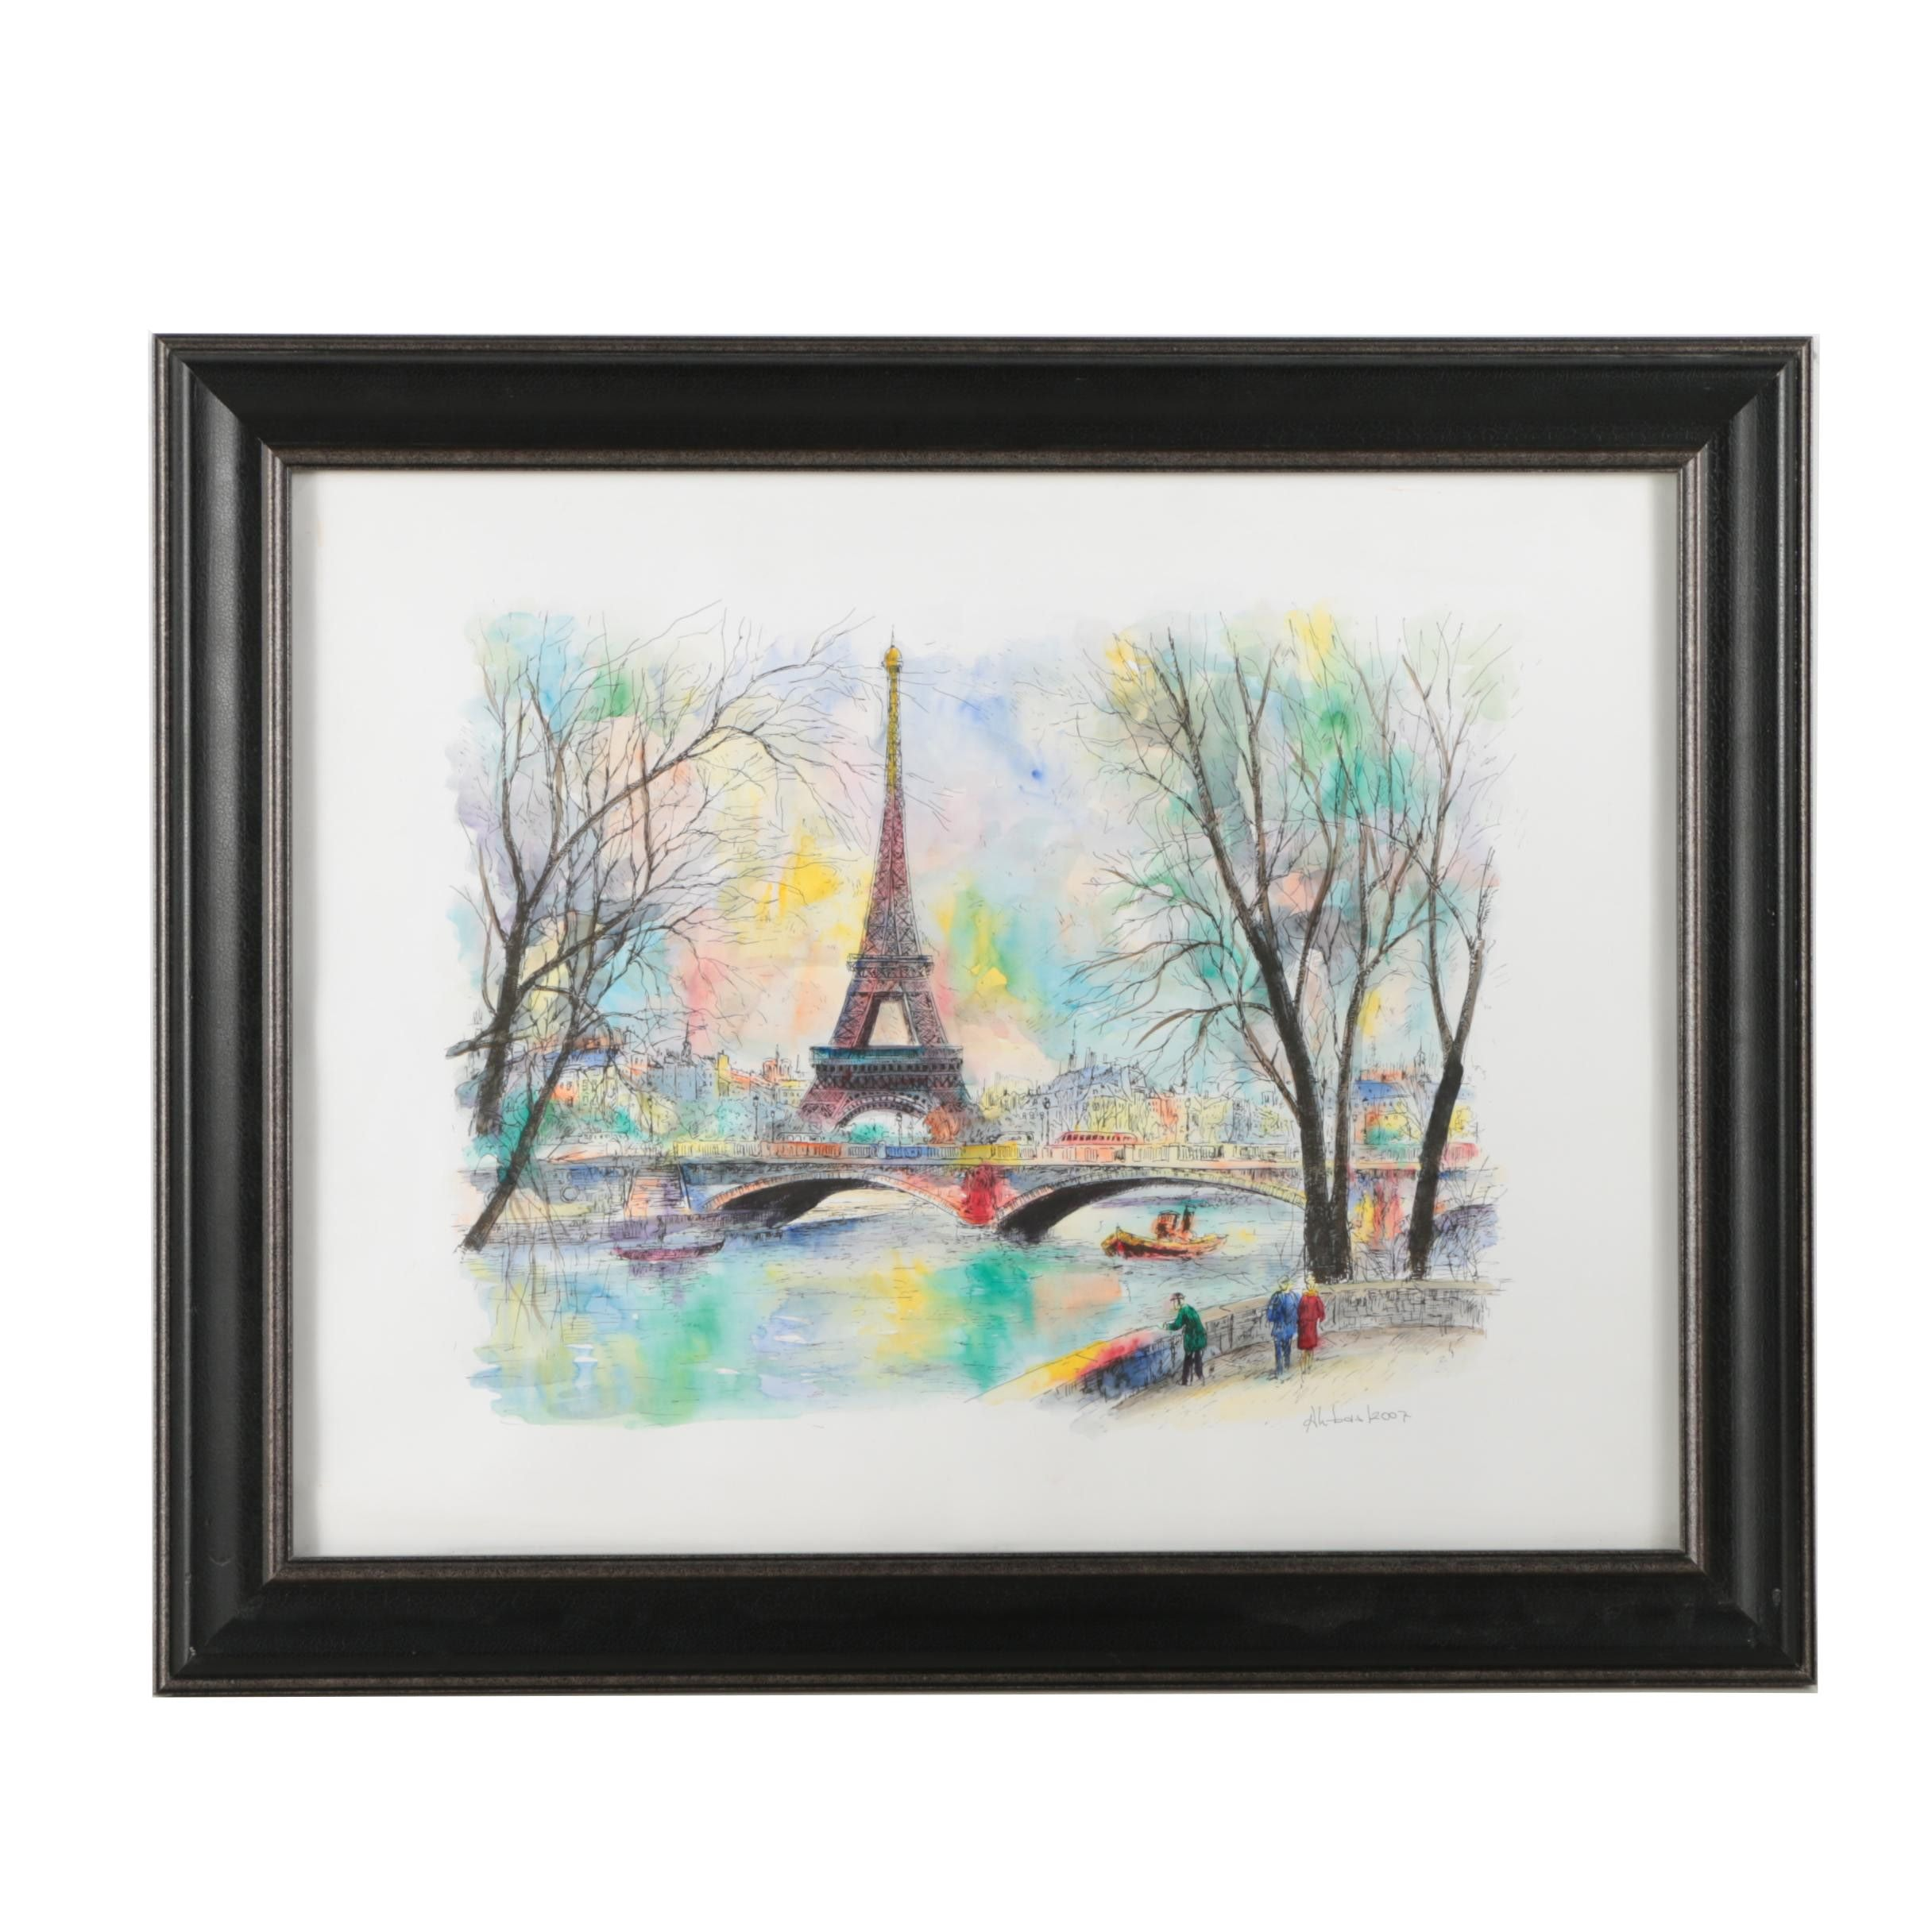 Ahbas 2007 Hand-Colored Lithograph of Parisian Cityscape with Eiffel Tower